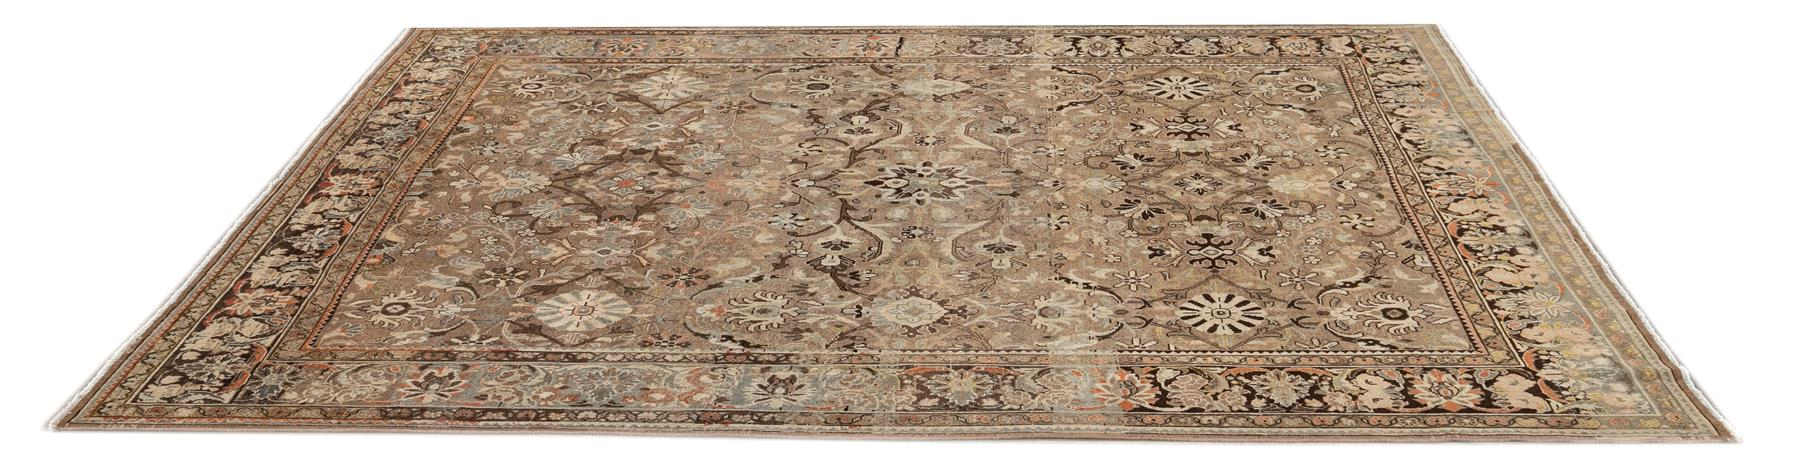 Antique Sultanabad Rug,  9' x 11'